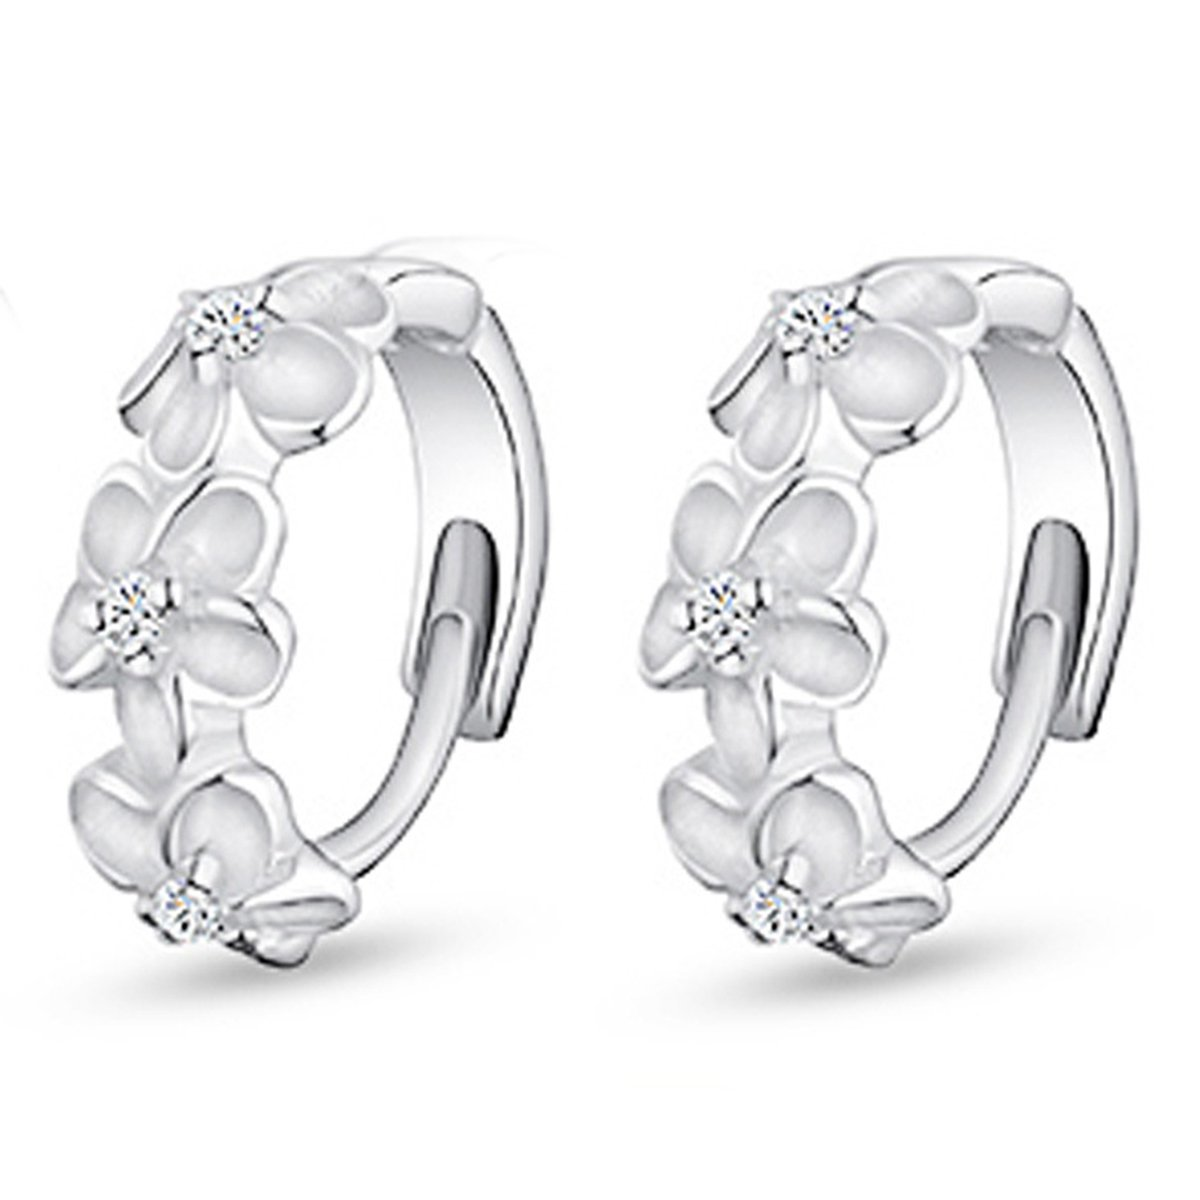 Feraco Jewelry Tiny Hoop Huggie Silver Flower Stainless Steel Crystal Sparkling Charms Earrings Set USA1705002